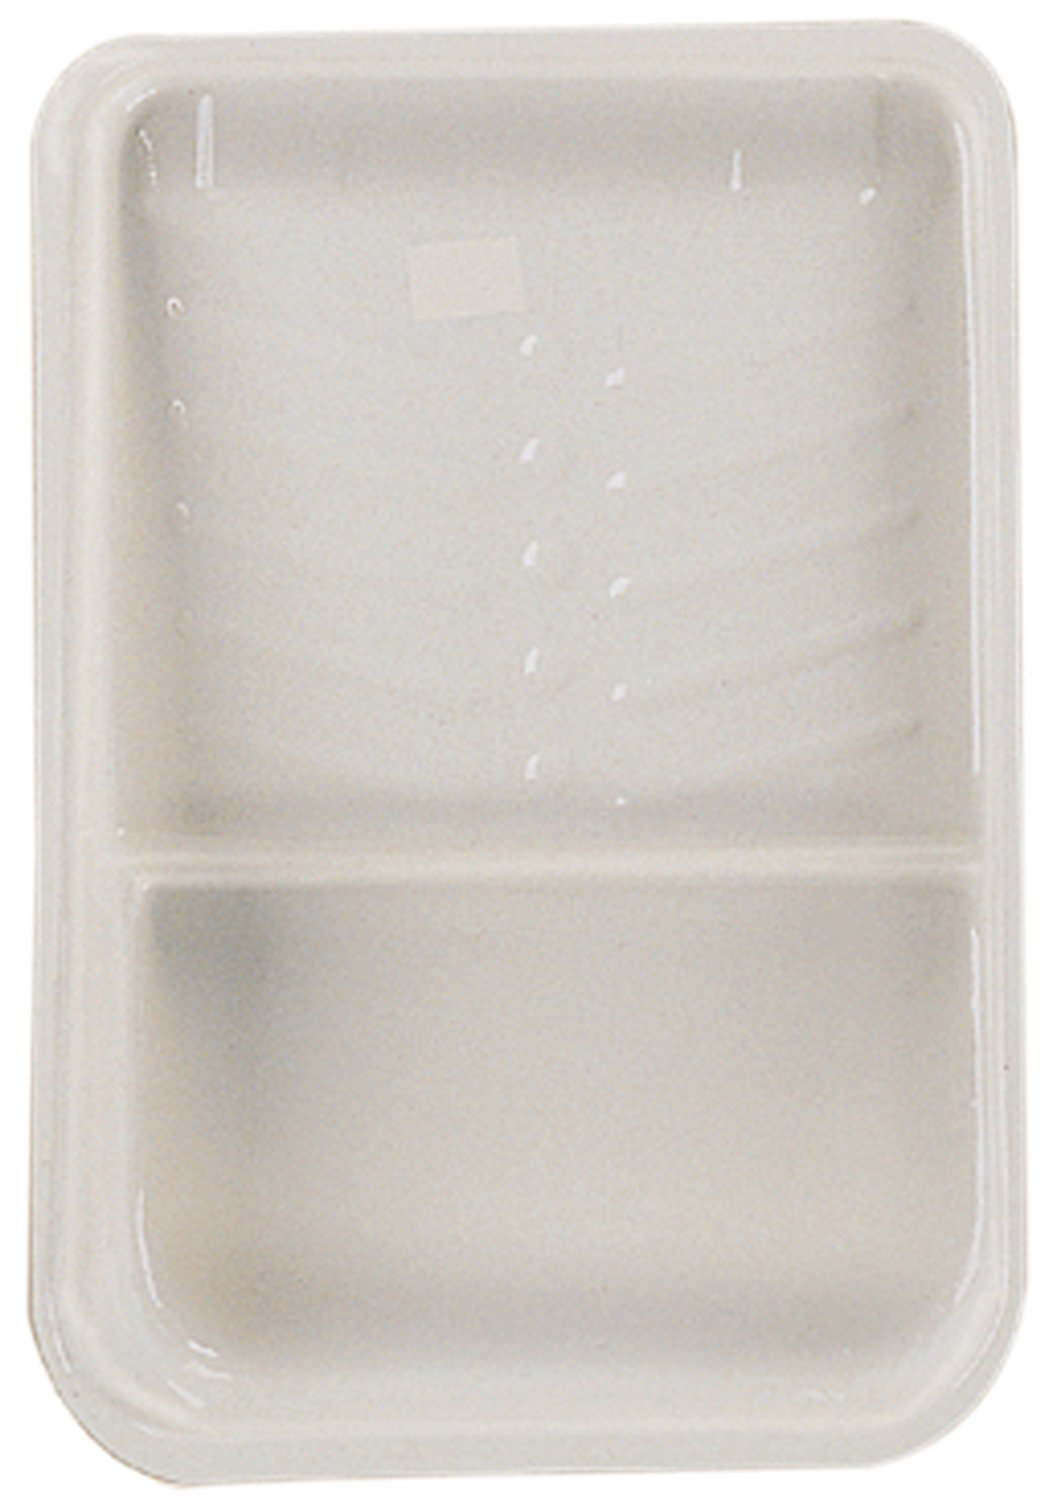 Linzer RM410 Tray Liner, Plastic, 1 quart (Pack of 144) 449-RM410